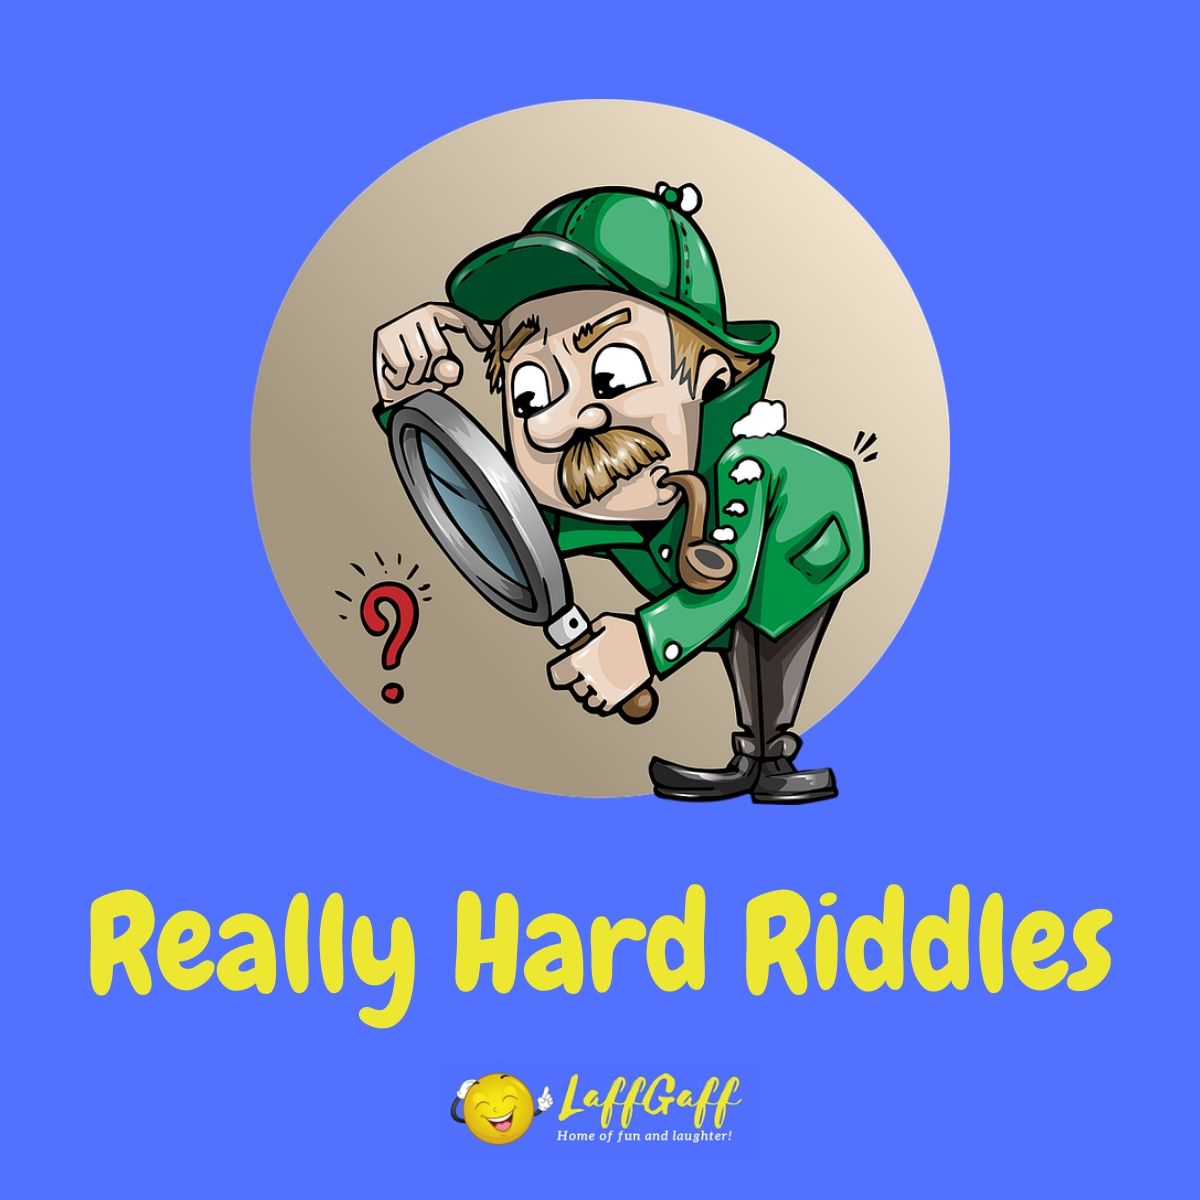 Featured image for a page of really hard riddles.